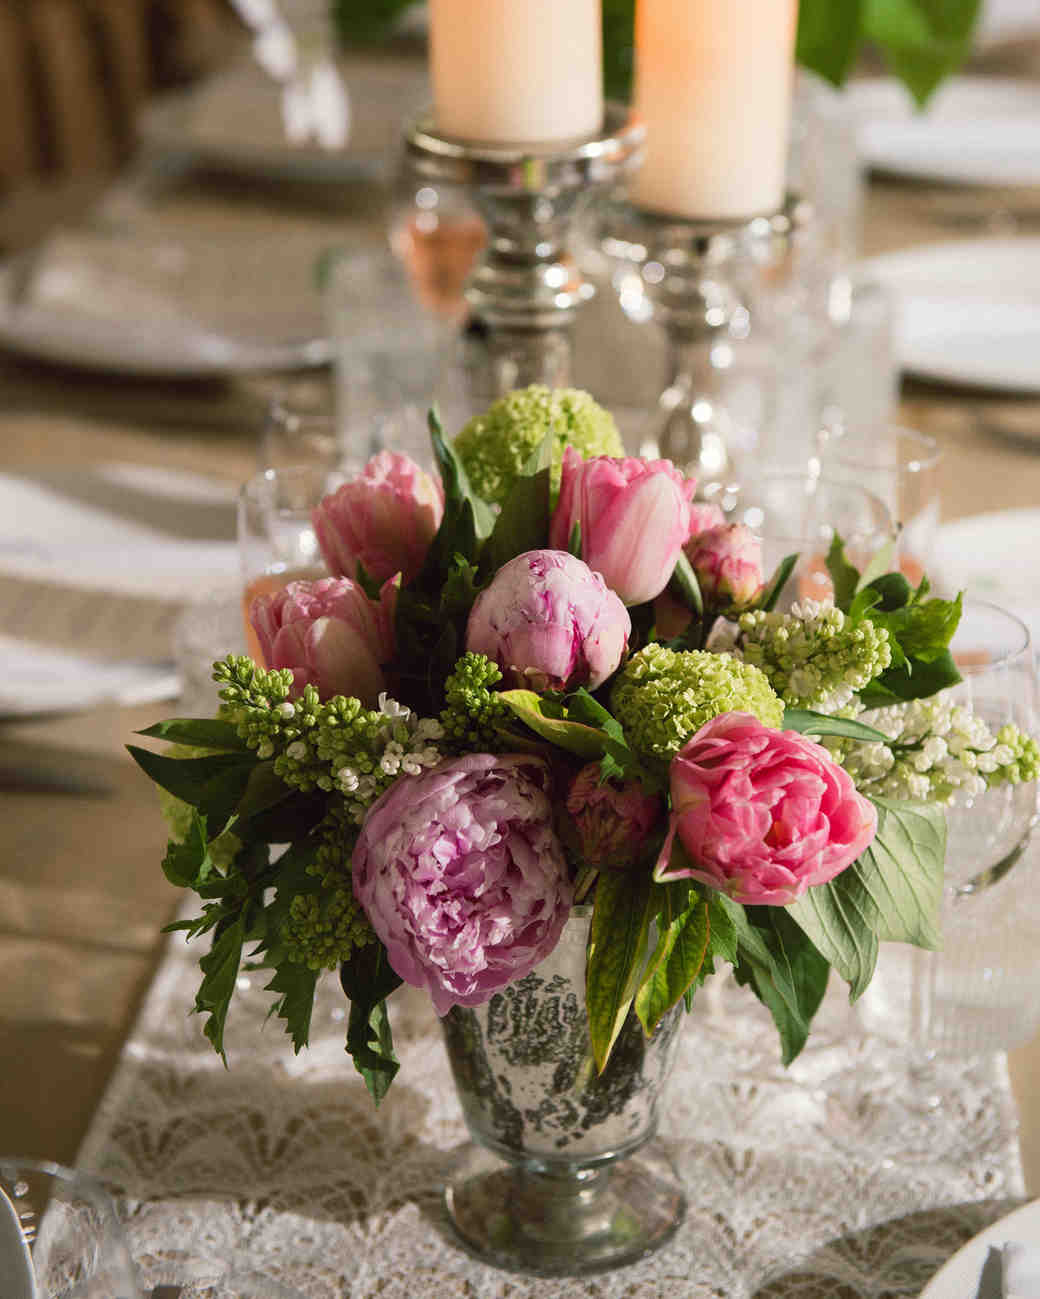 katy andrew wedding centerpiece